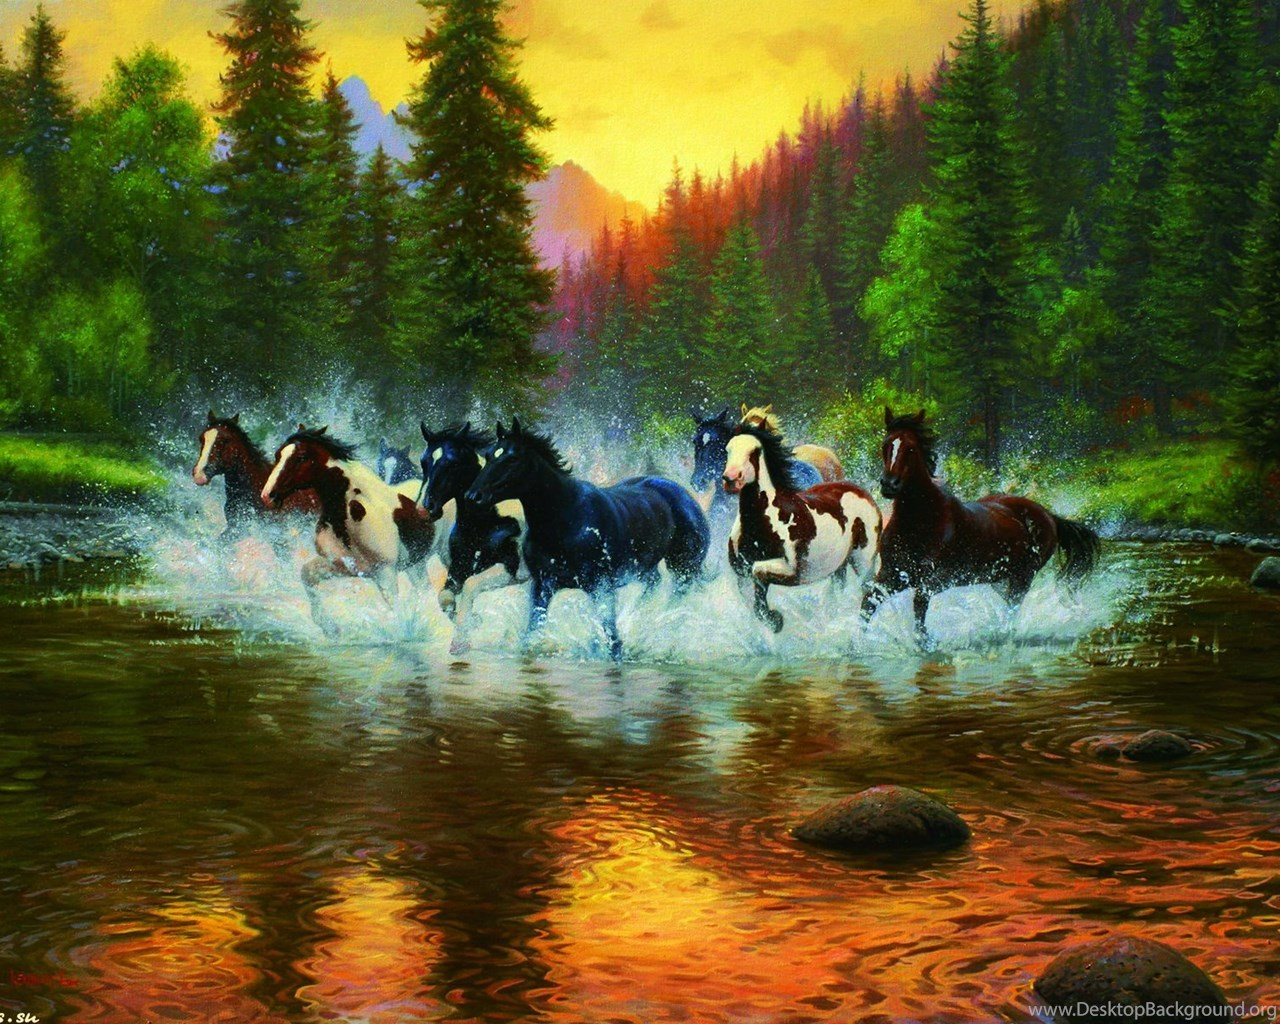 Iphone 5c Color Wallpaper Horses Wild Horses Sunset River Water Firs Herd Nature